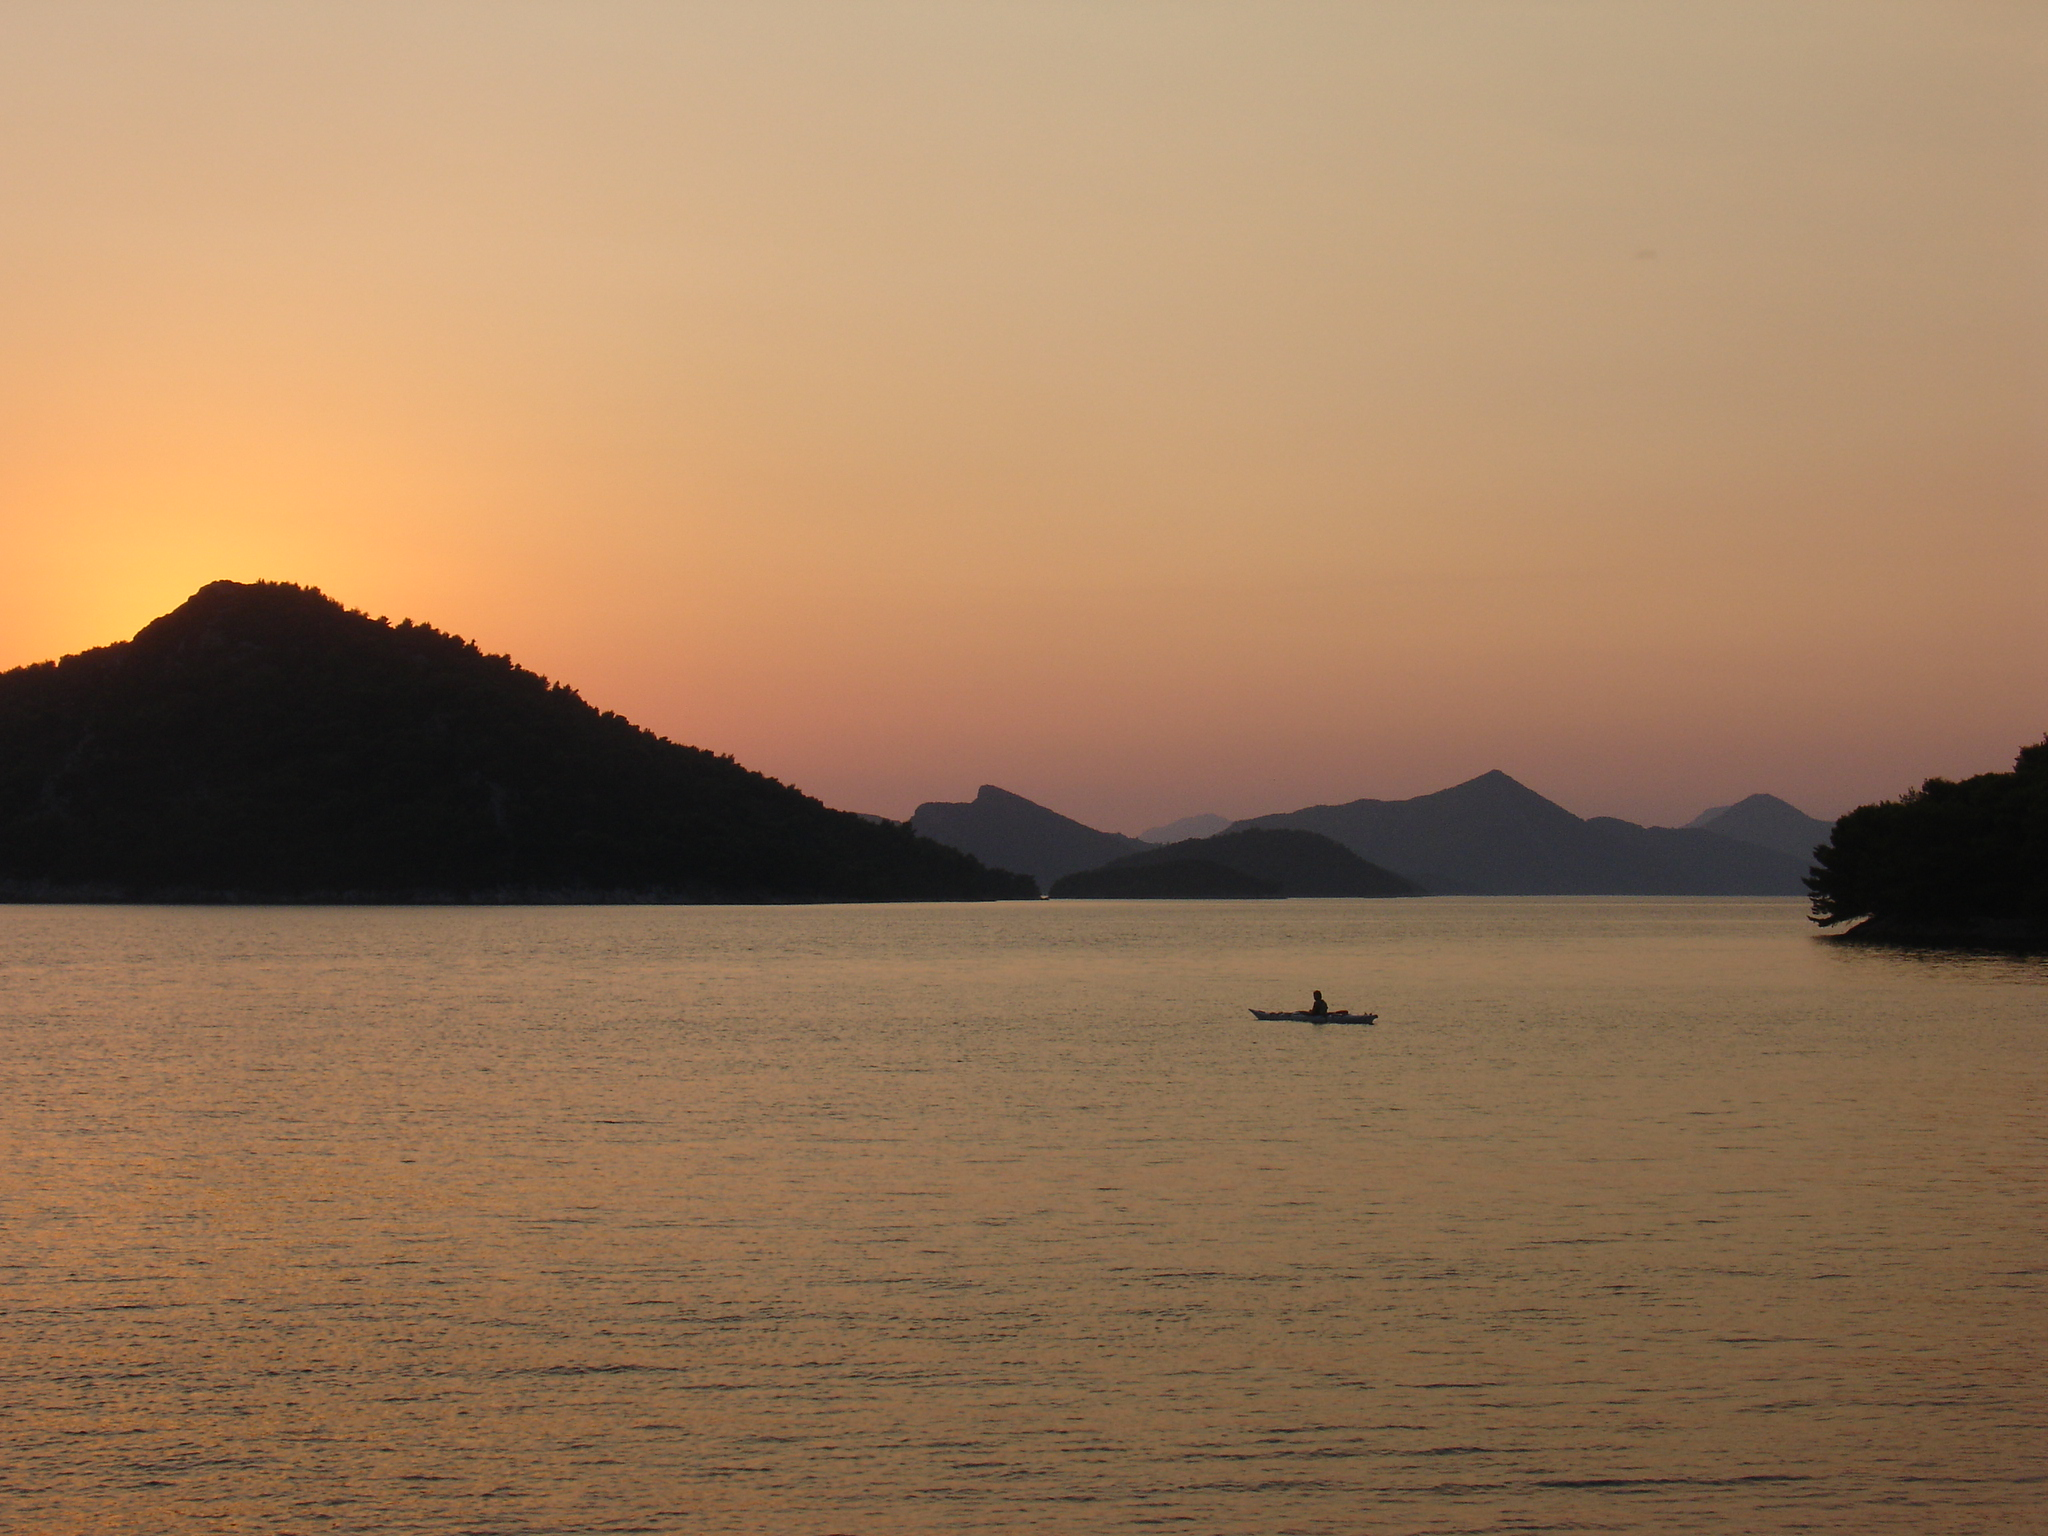 Sunset on Sipan Island in Croatia